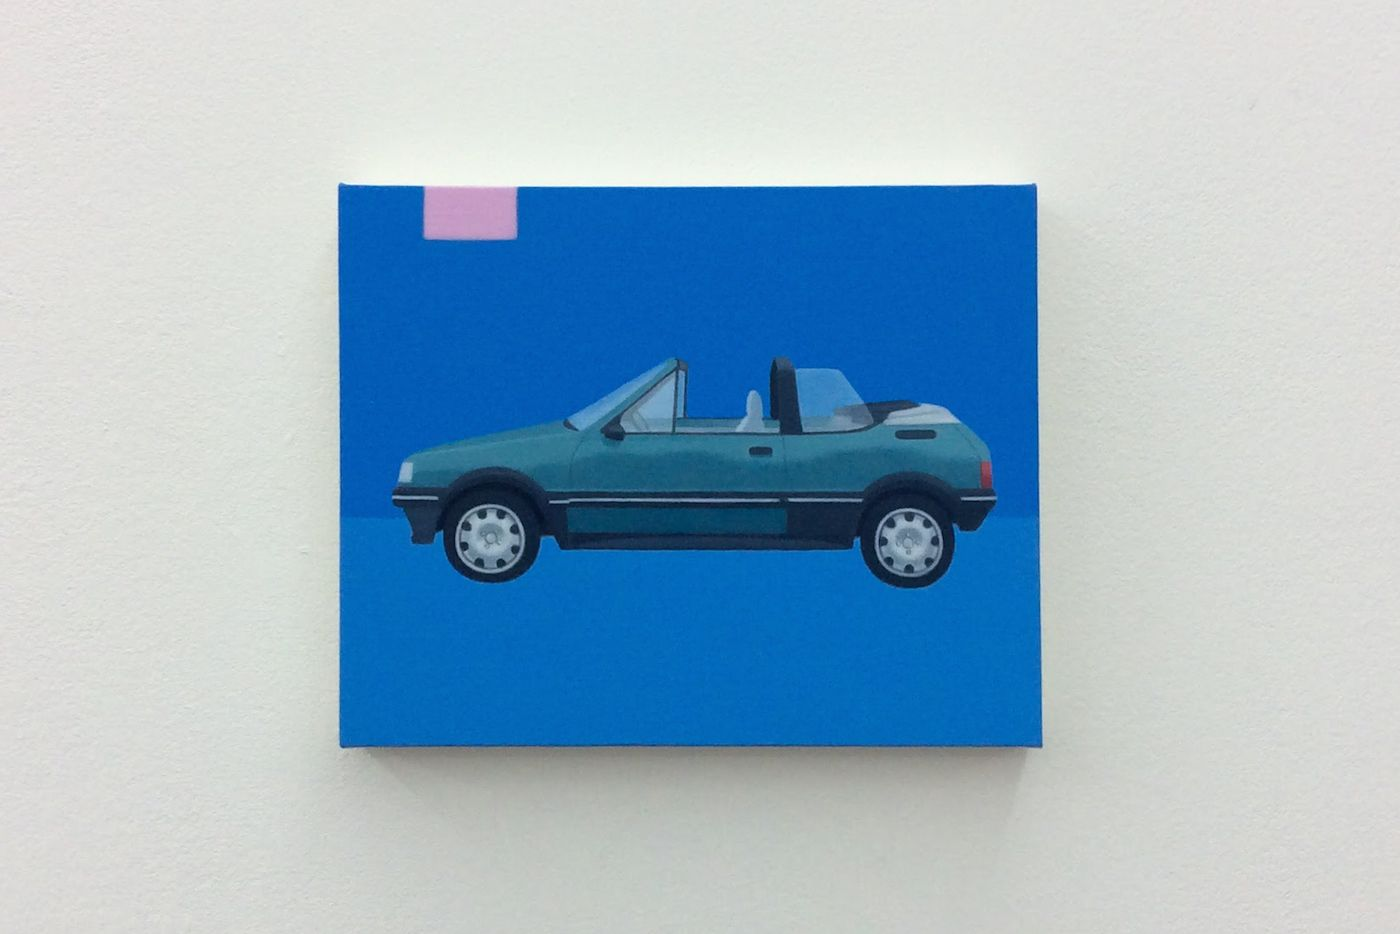 Ridley Howard, Lionel's Car, 2015